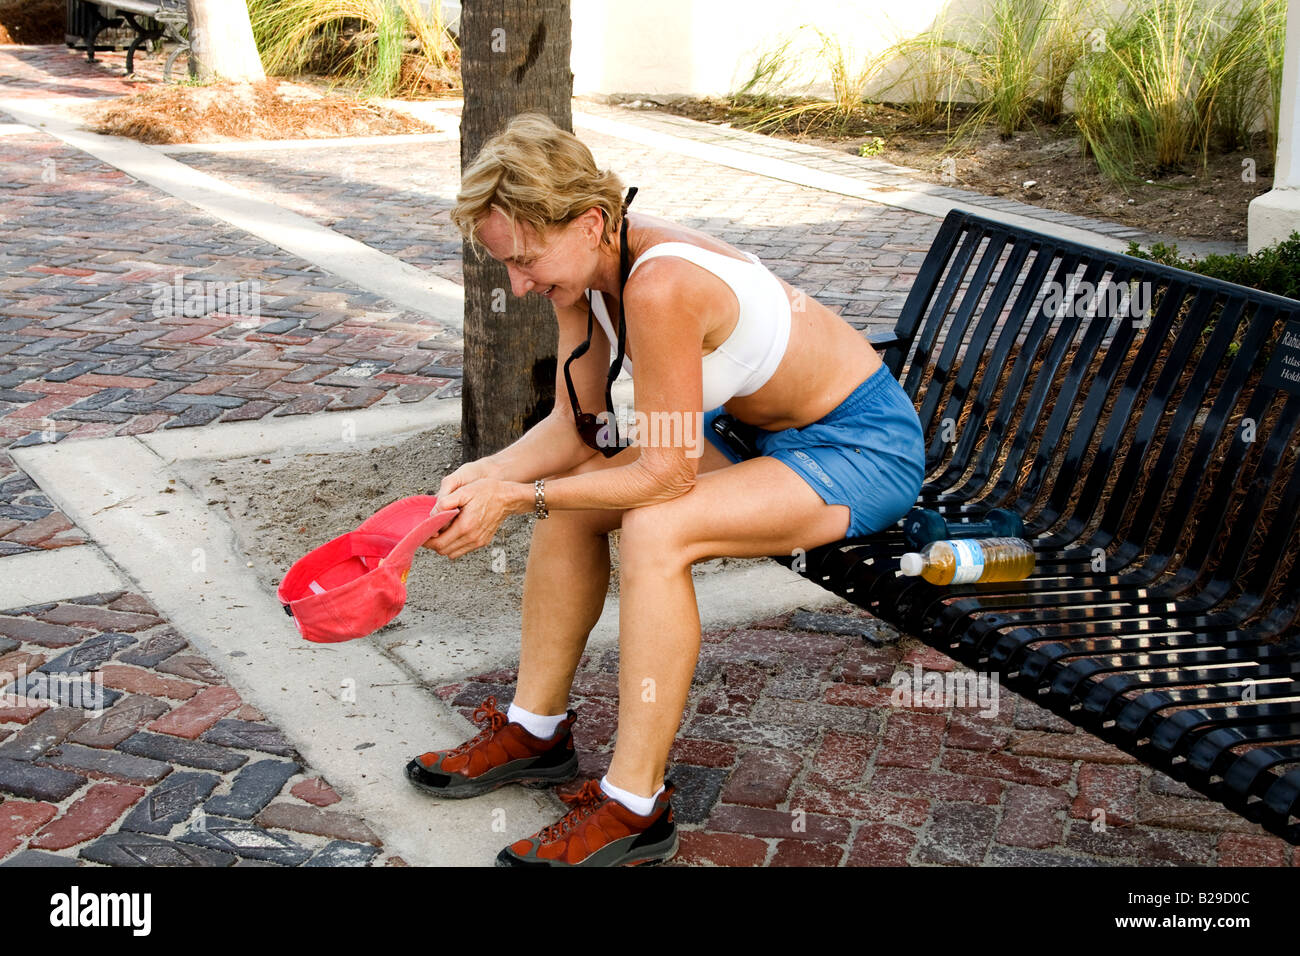 Middle-aged woman athlete resting with hat in hand on a bench in Atlantic Beach, Florida - Stock Image